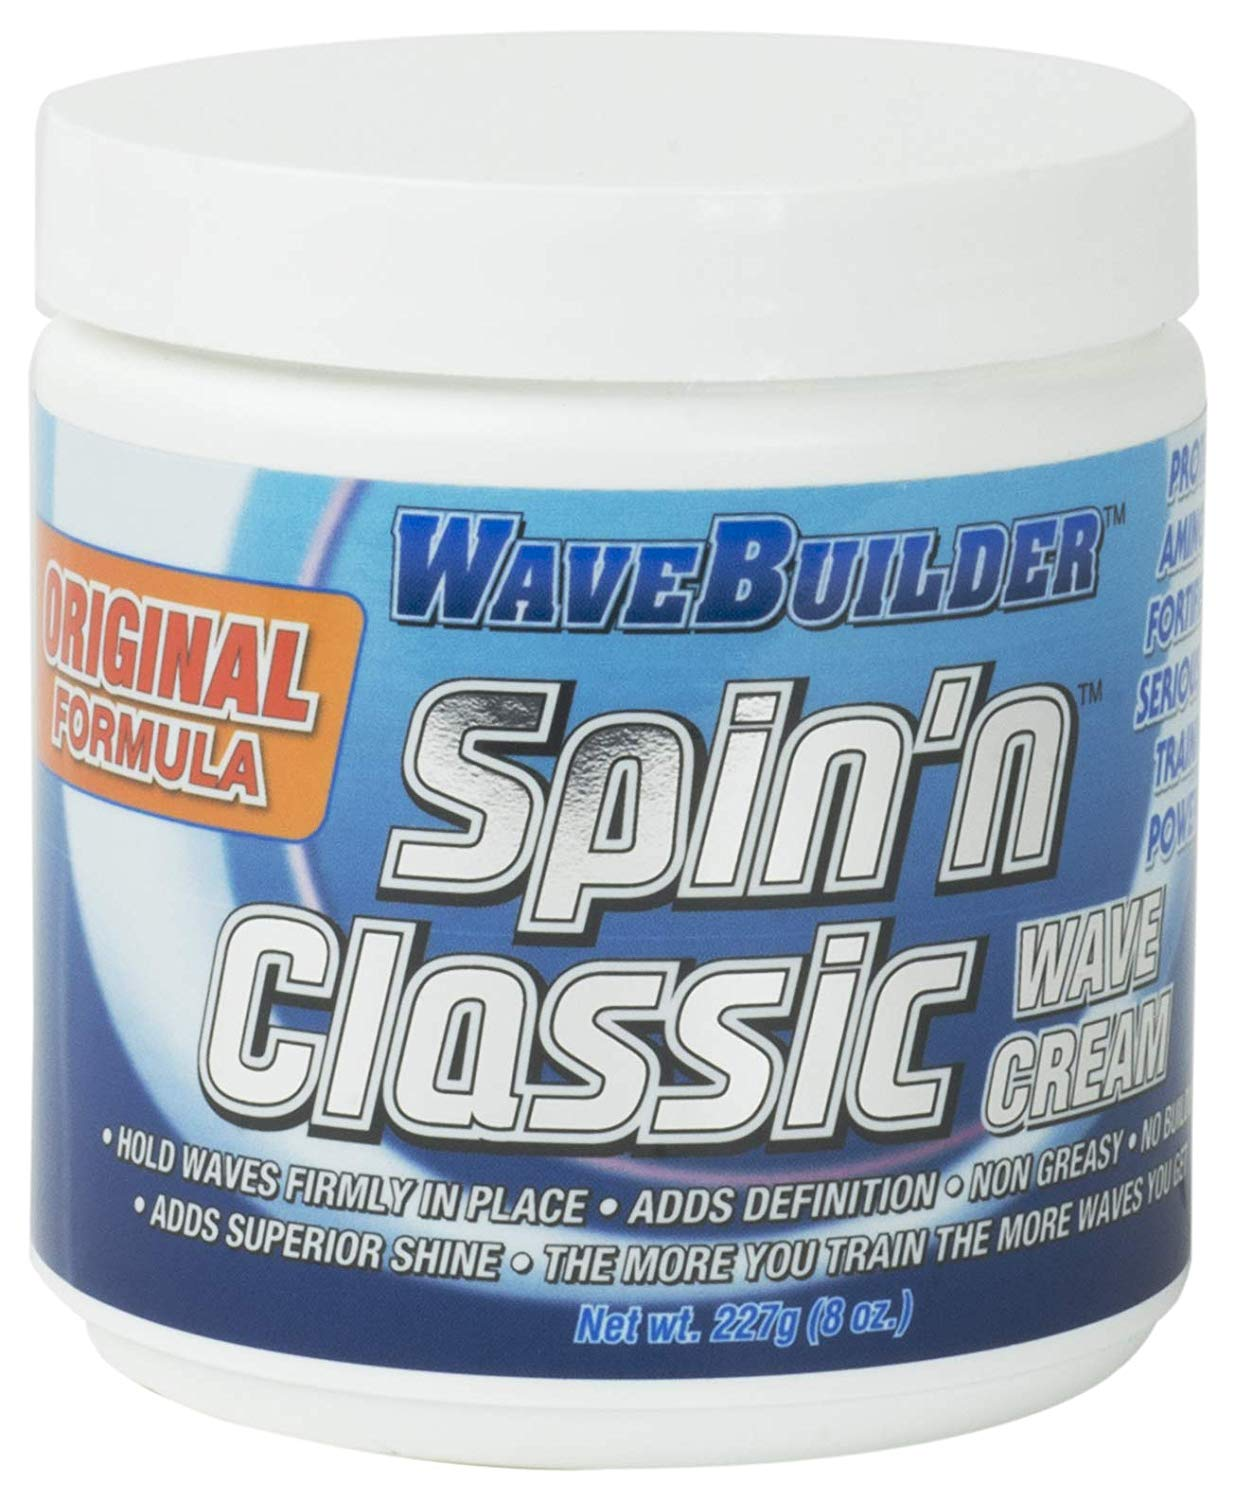 Spinand Classic Wave Cream